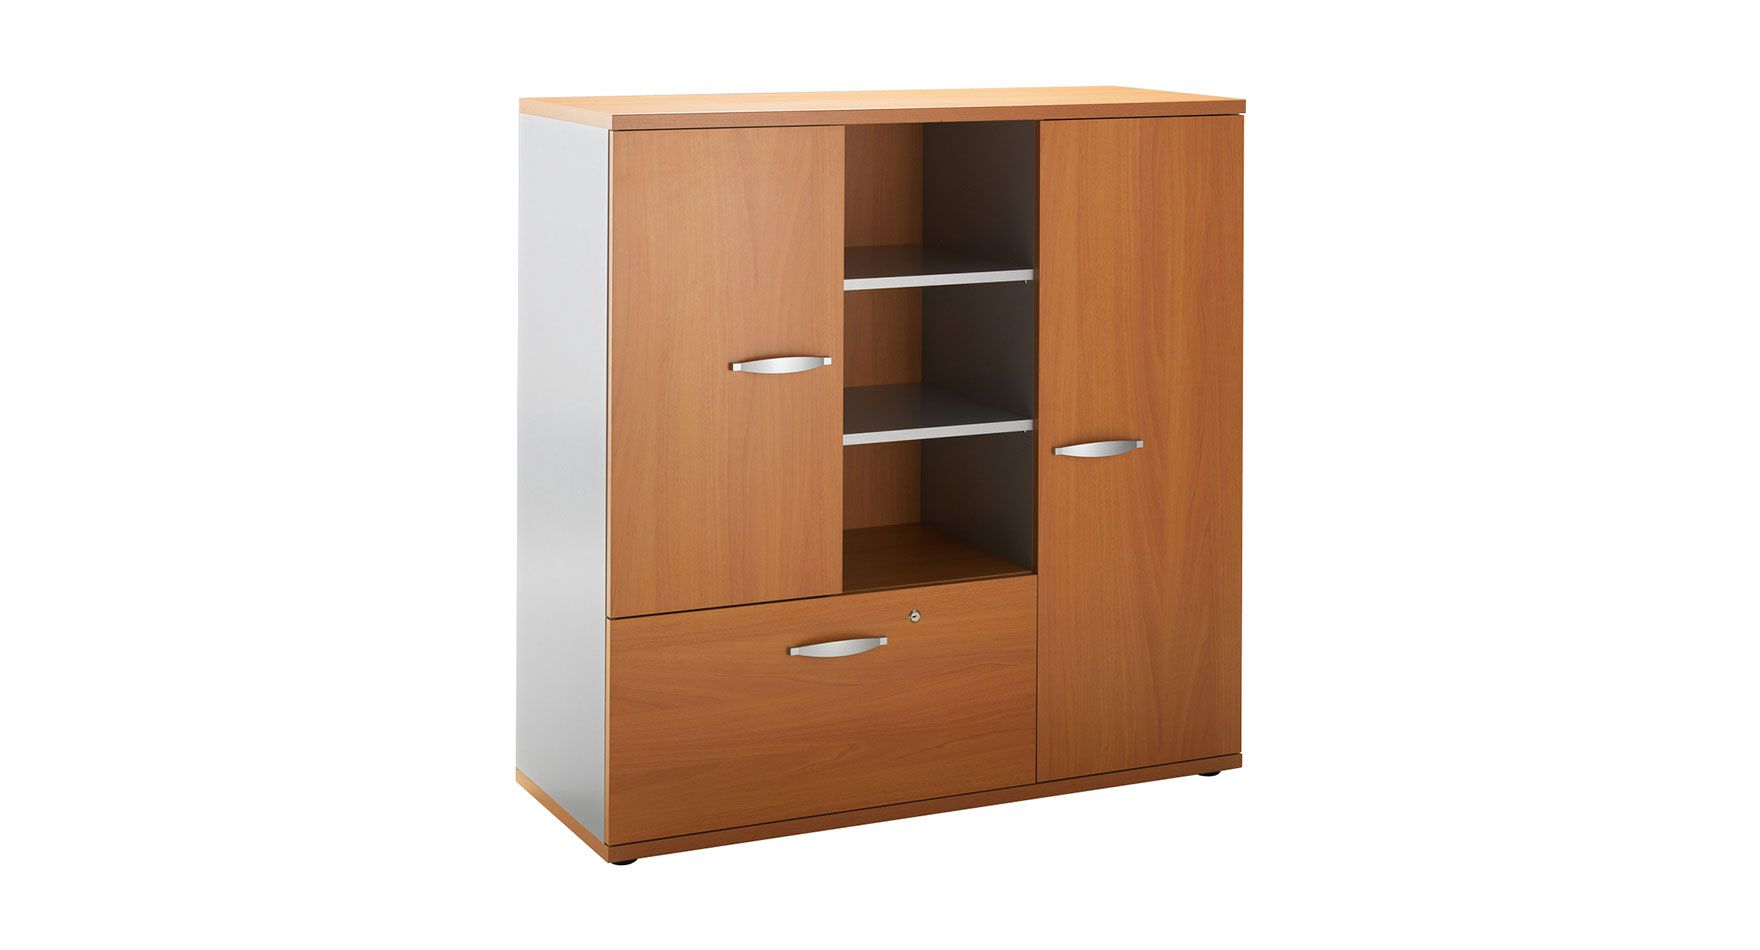 Khmer Furniture Low Carbinet Compact cupboard in Cambodia